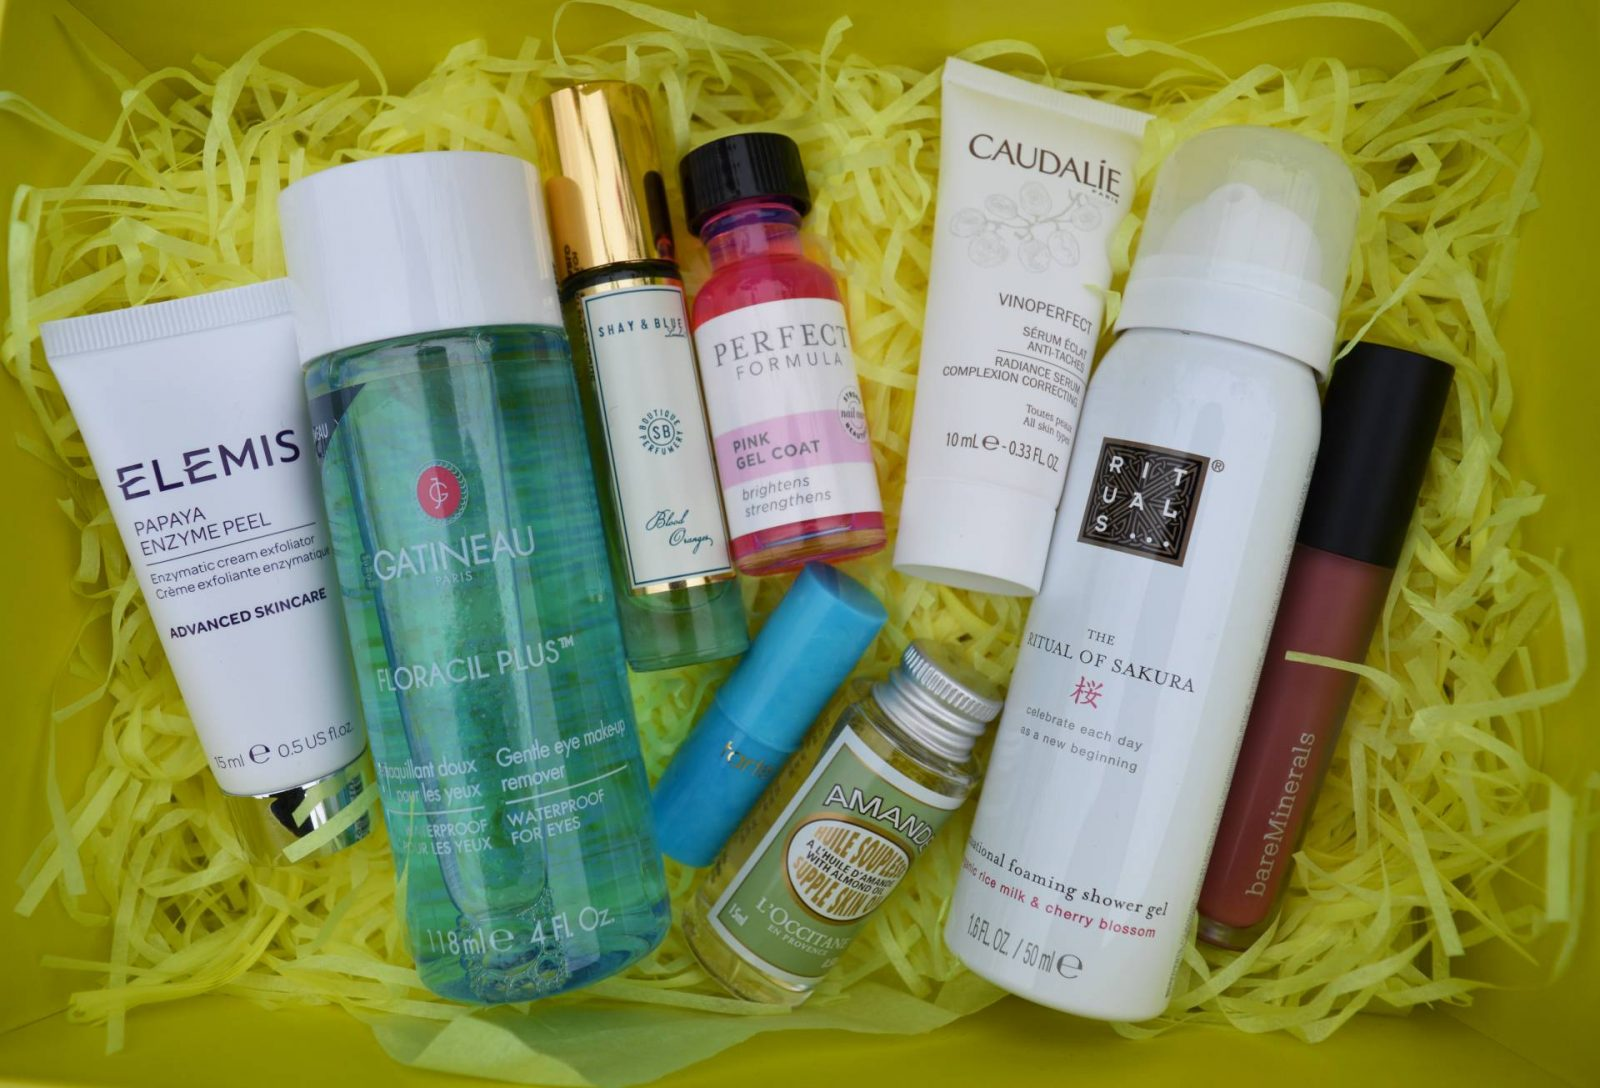 Tili Beauty Box Fifth Edition